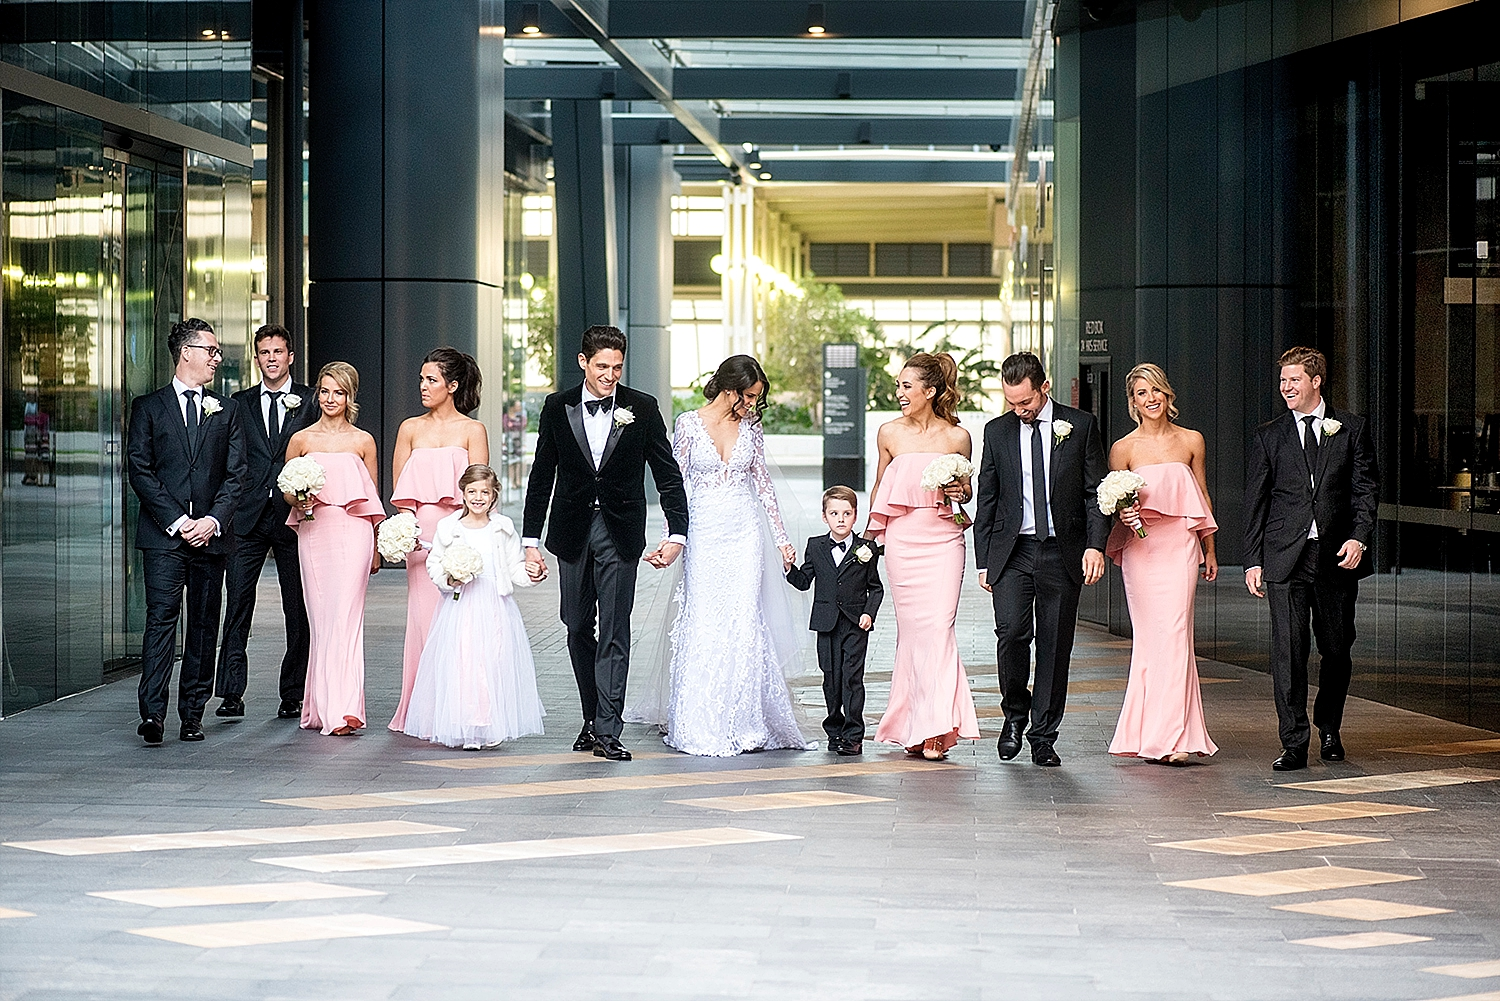 063_brookfield place wedding photos state reception centre wedding perth.JPG